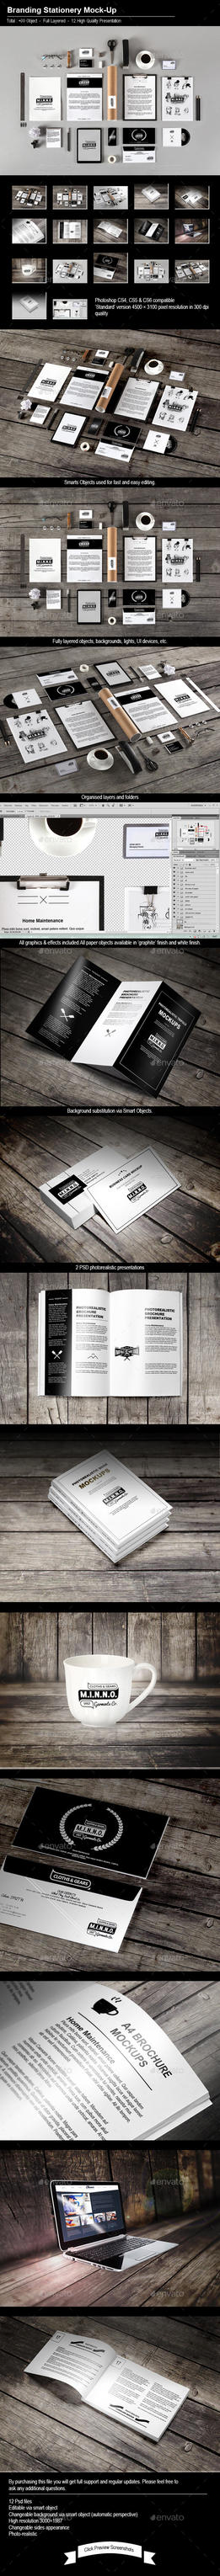 Stationery / Branding Mock-Up by calwincalwin